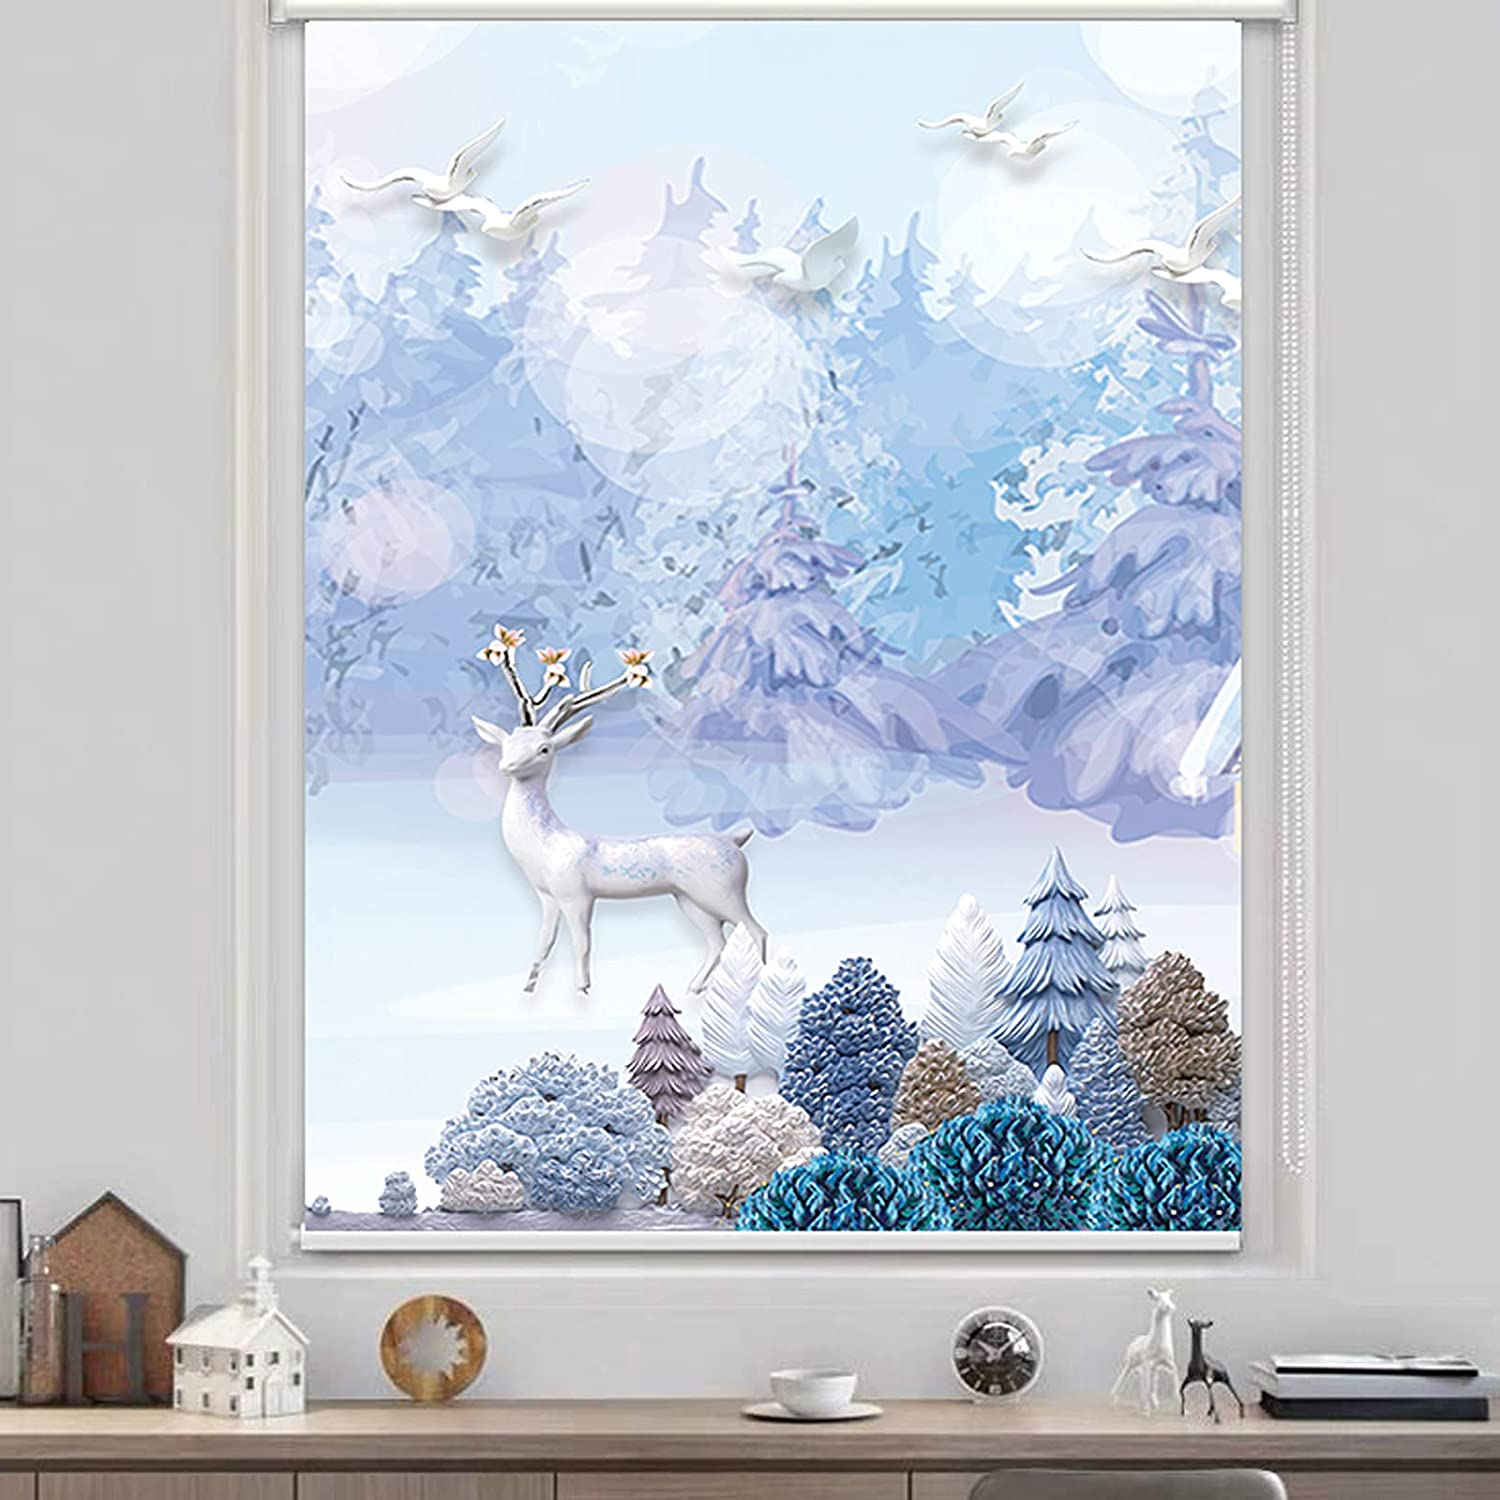 ZWLI Roller New products world's highest quality popular Time sale Blind Opaque Privacy Quick Insta Window Screen